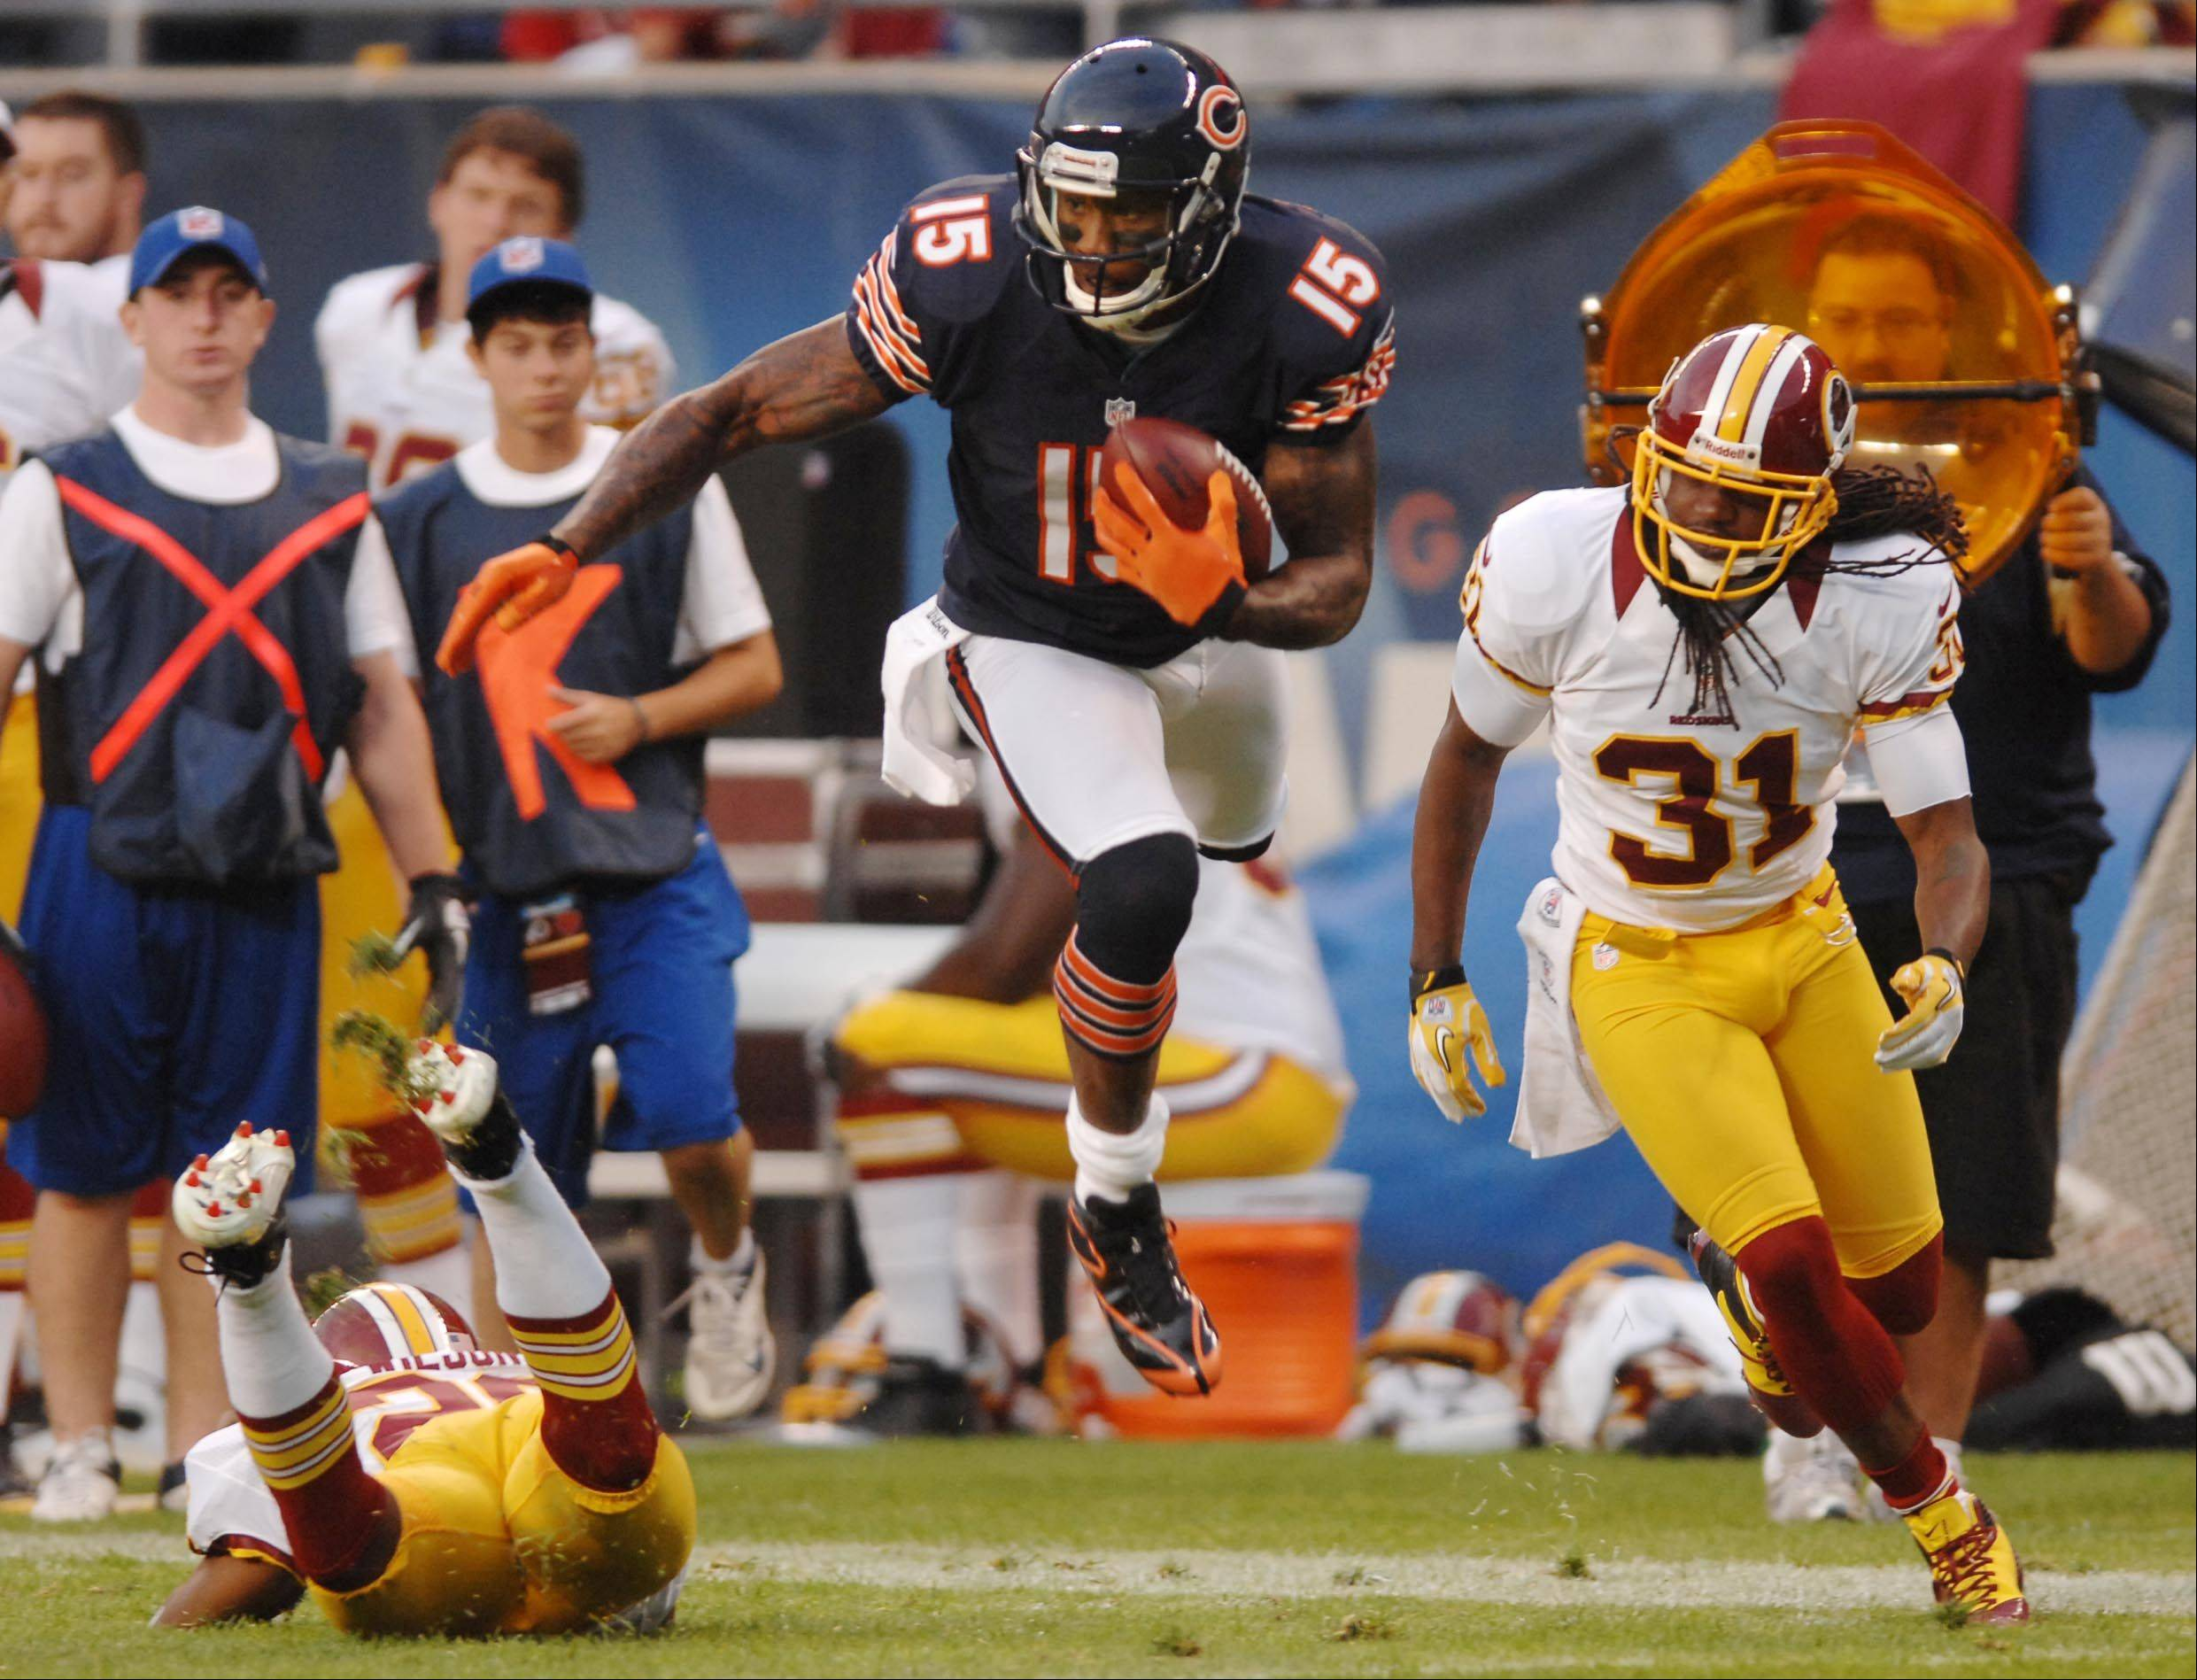 Will the addition of wide receiver Brandon Marshall put the Bears over the top this season?